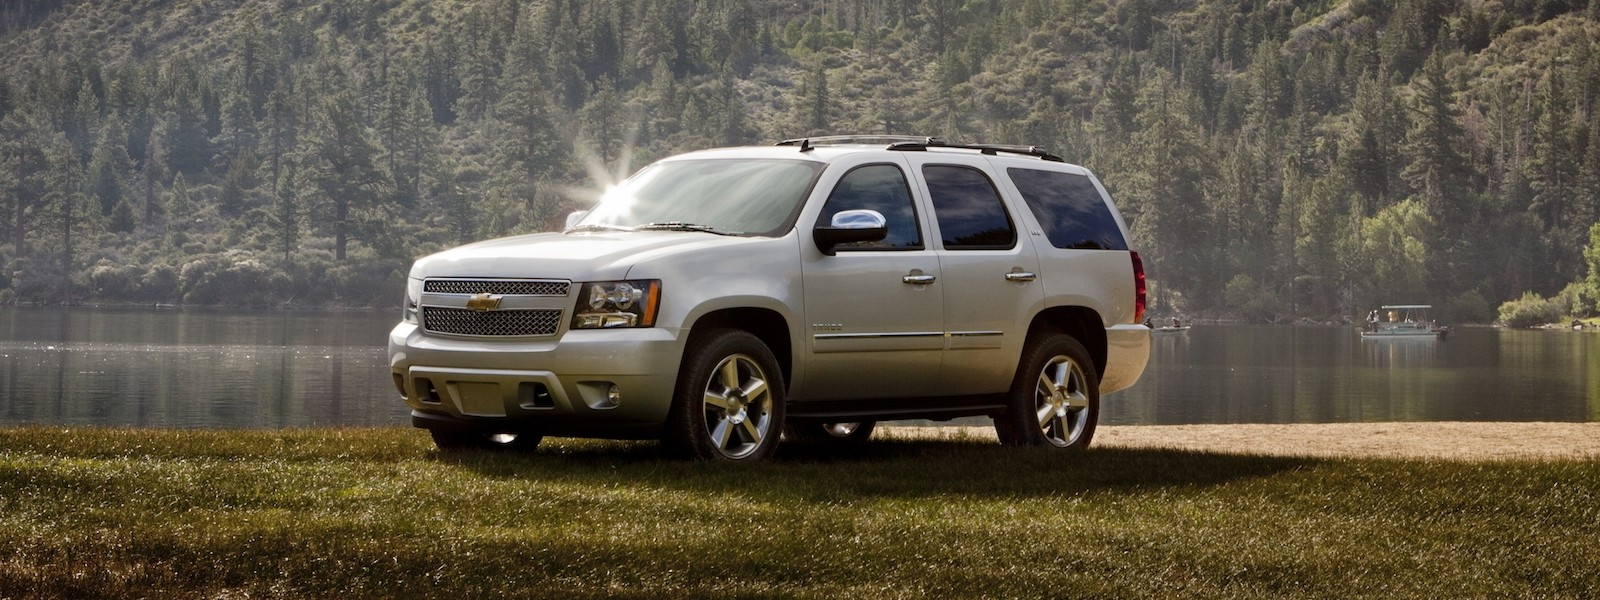 used chevy tahoe columbus oh online cars. Black Bedroom Furniture Sets. Home Design Ideas